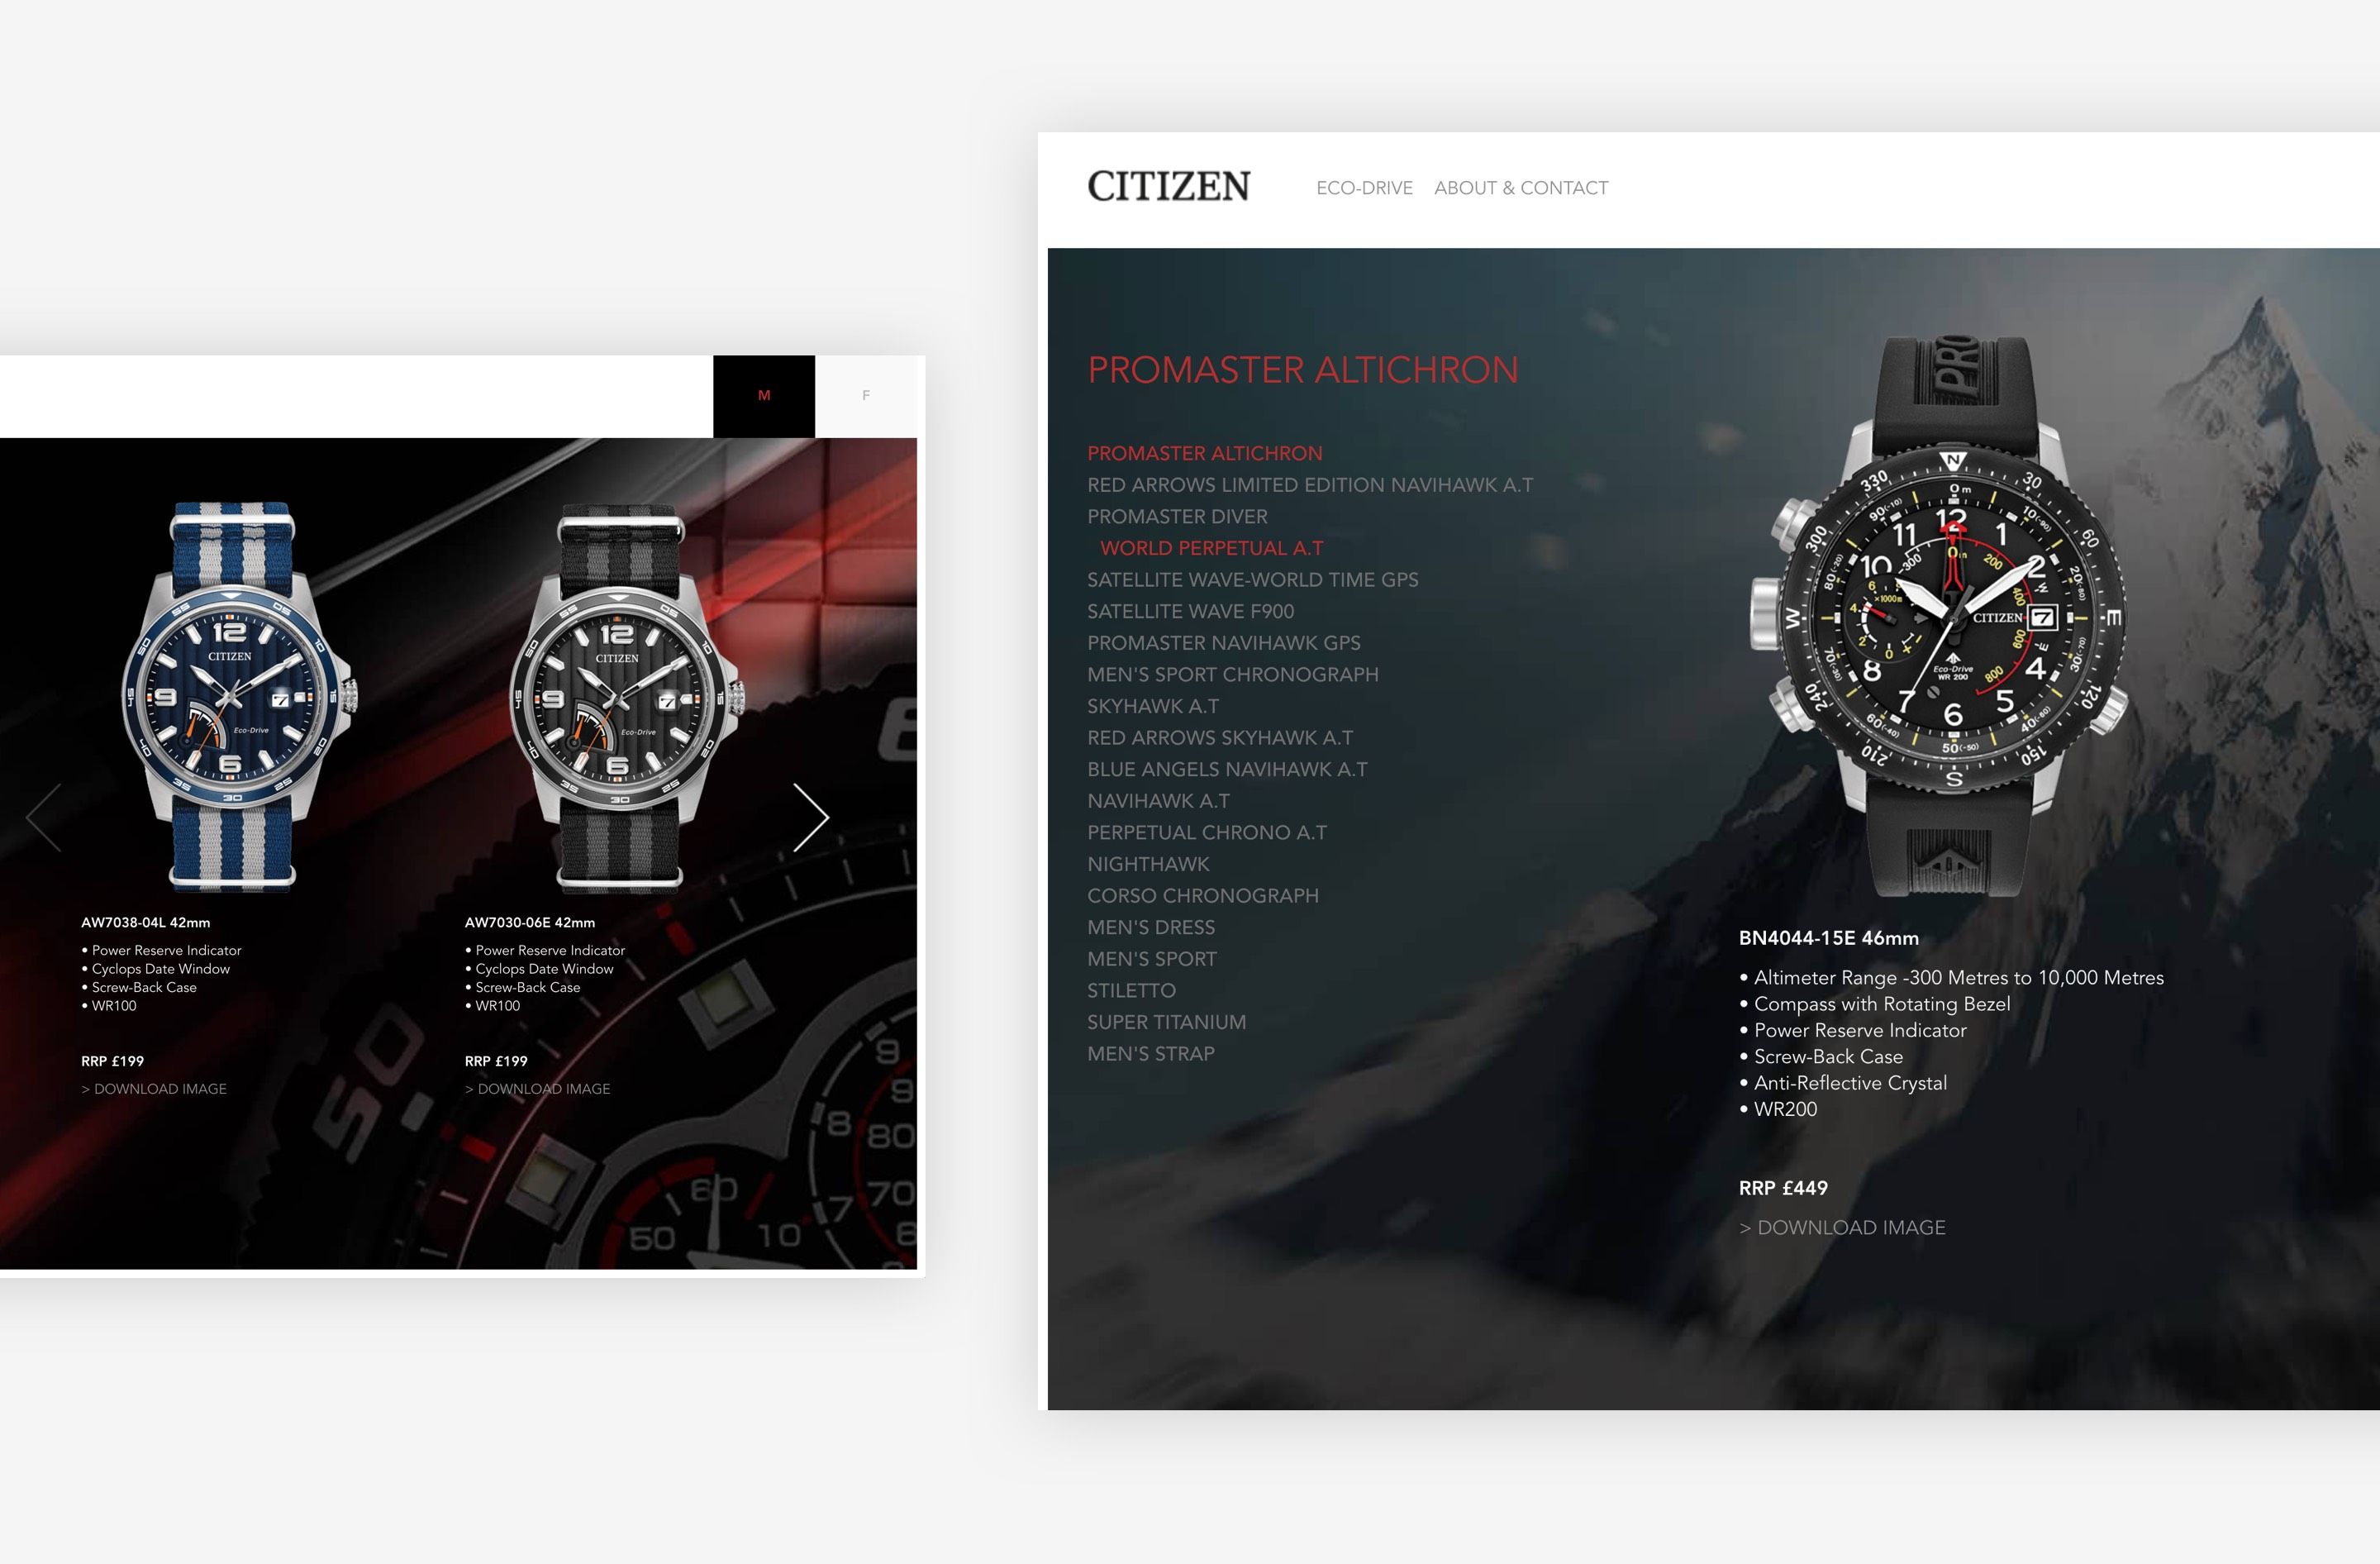 Strong imagery and product design helped a user's experience